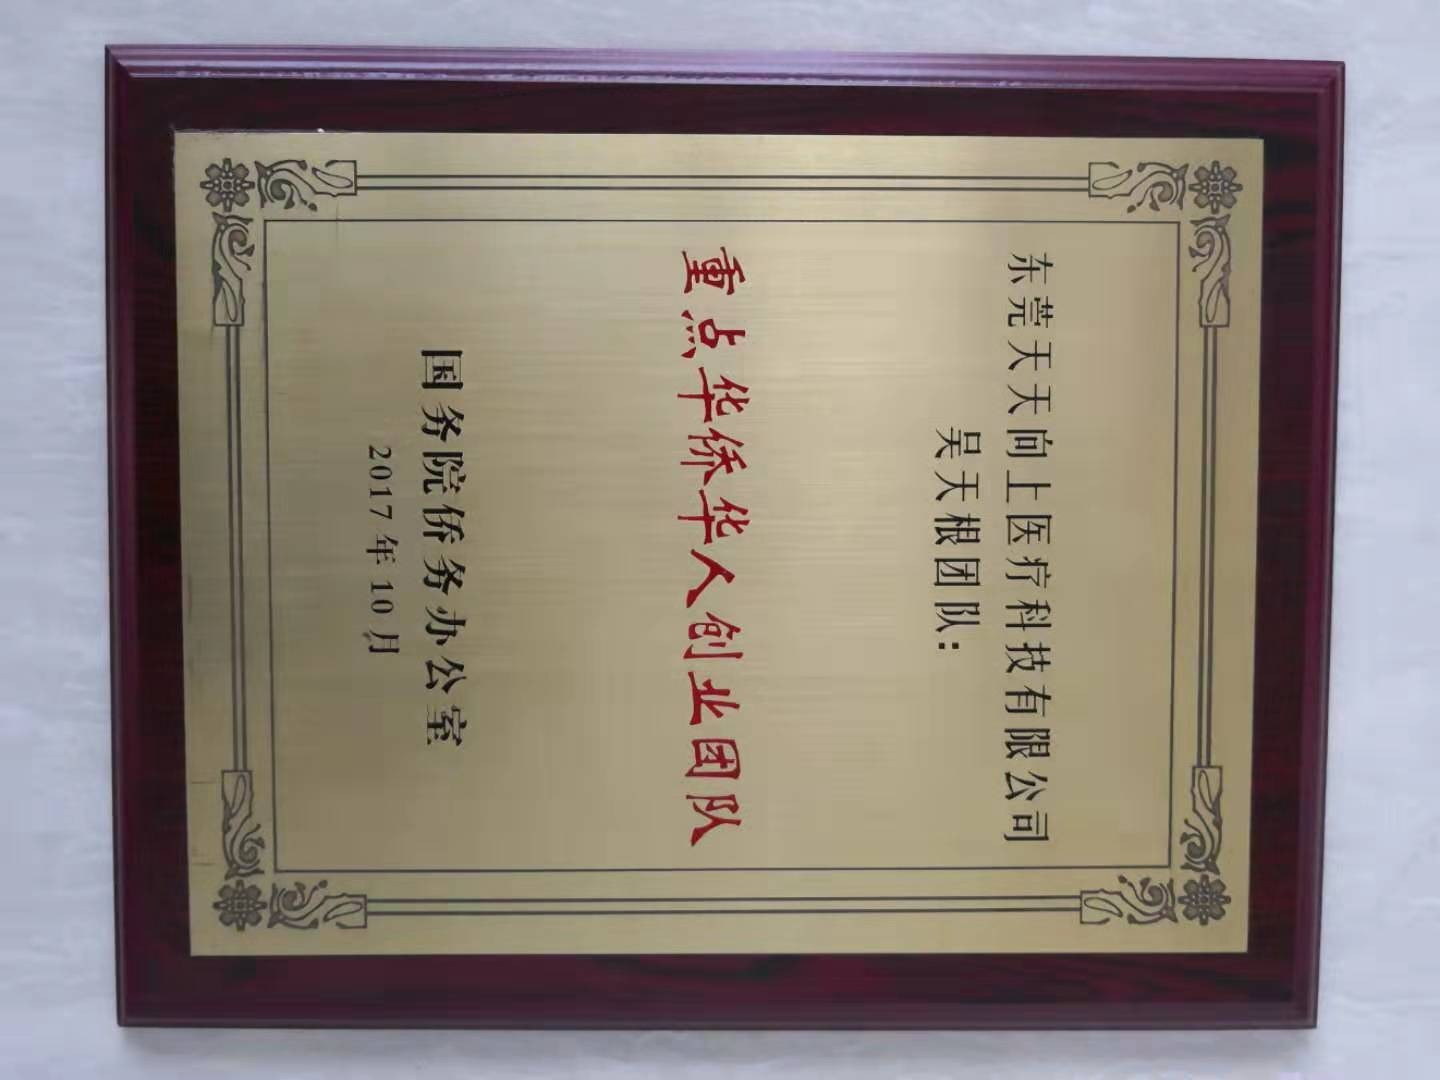 Guangdong Innovation Team Certificate